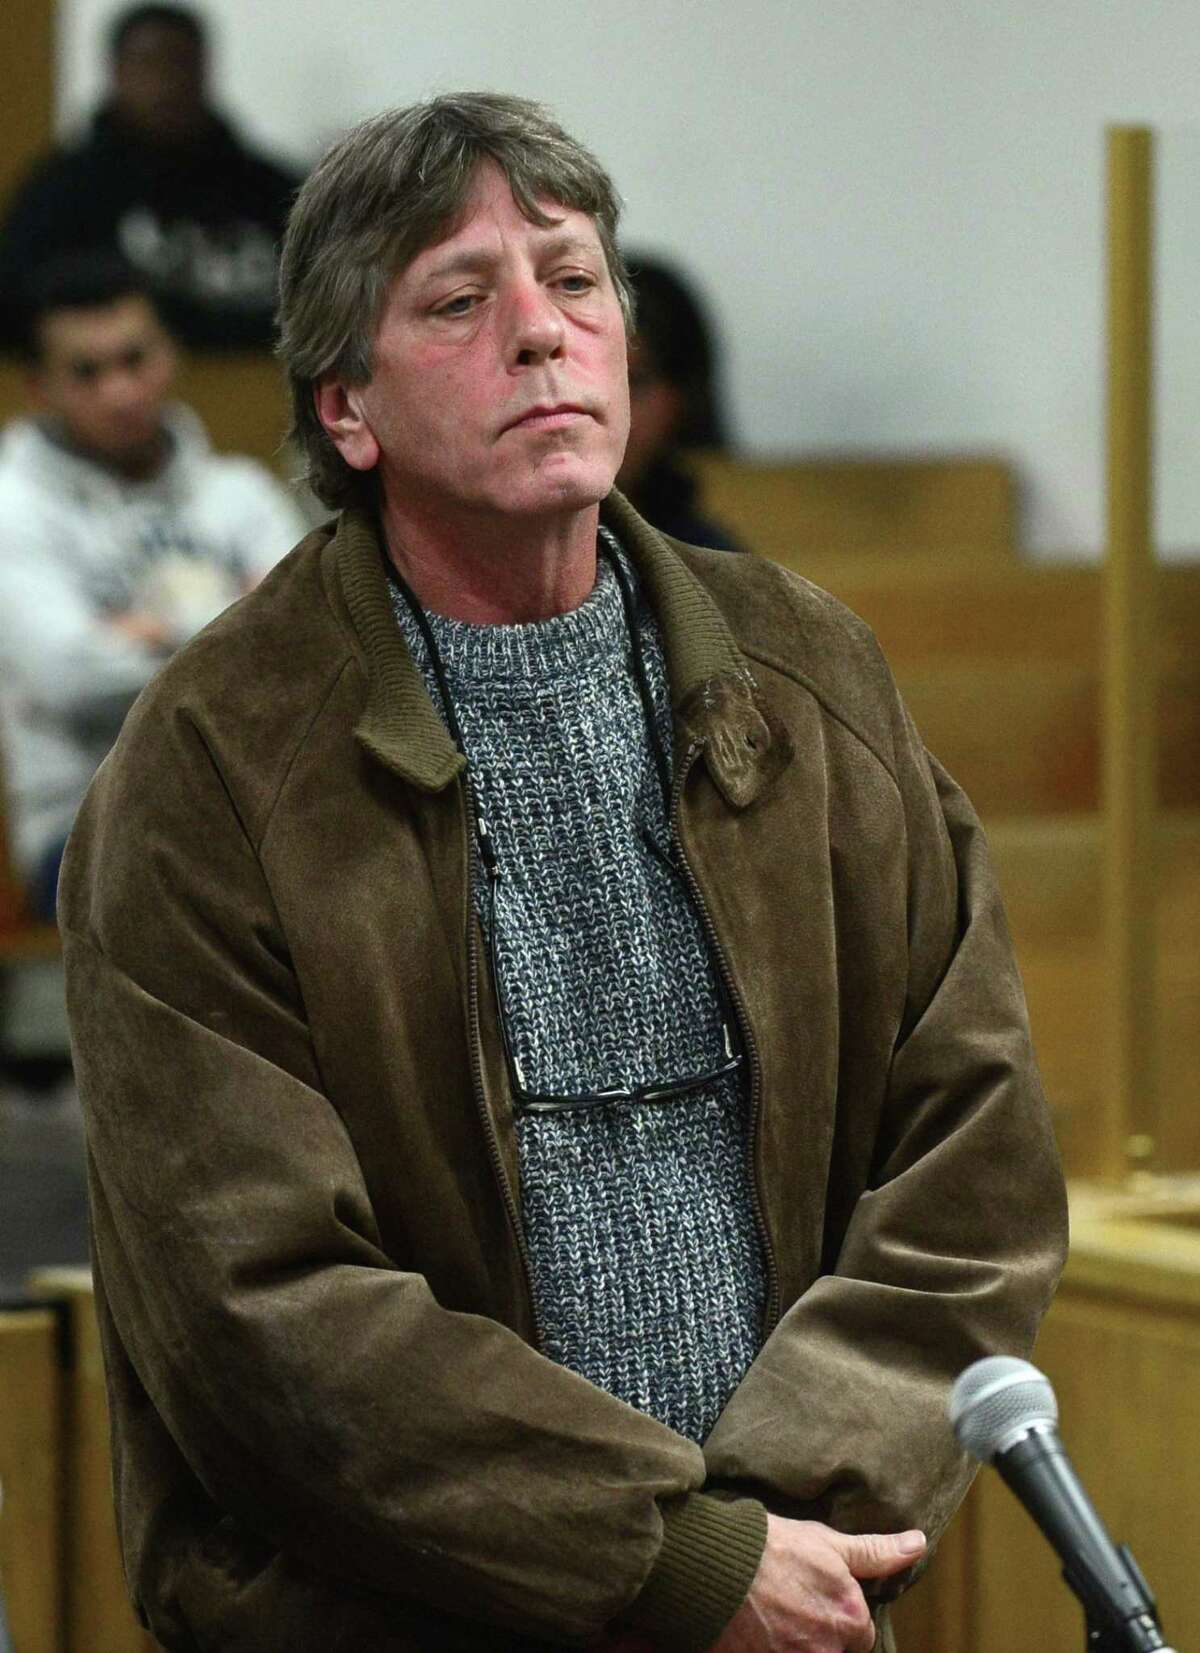 New Canaan resident Mark Lynch was denied parole on Wednesday, Jan. 2, with two years left on a three-year sentence for giving his son, Chris Lynch, the heroin that killed him. Lynch is pictured here being arraigned in Norwalk Superior Court for manslaughter on Friday, Dec. 2, 2016.